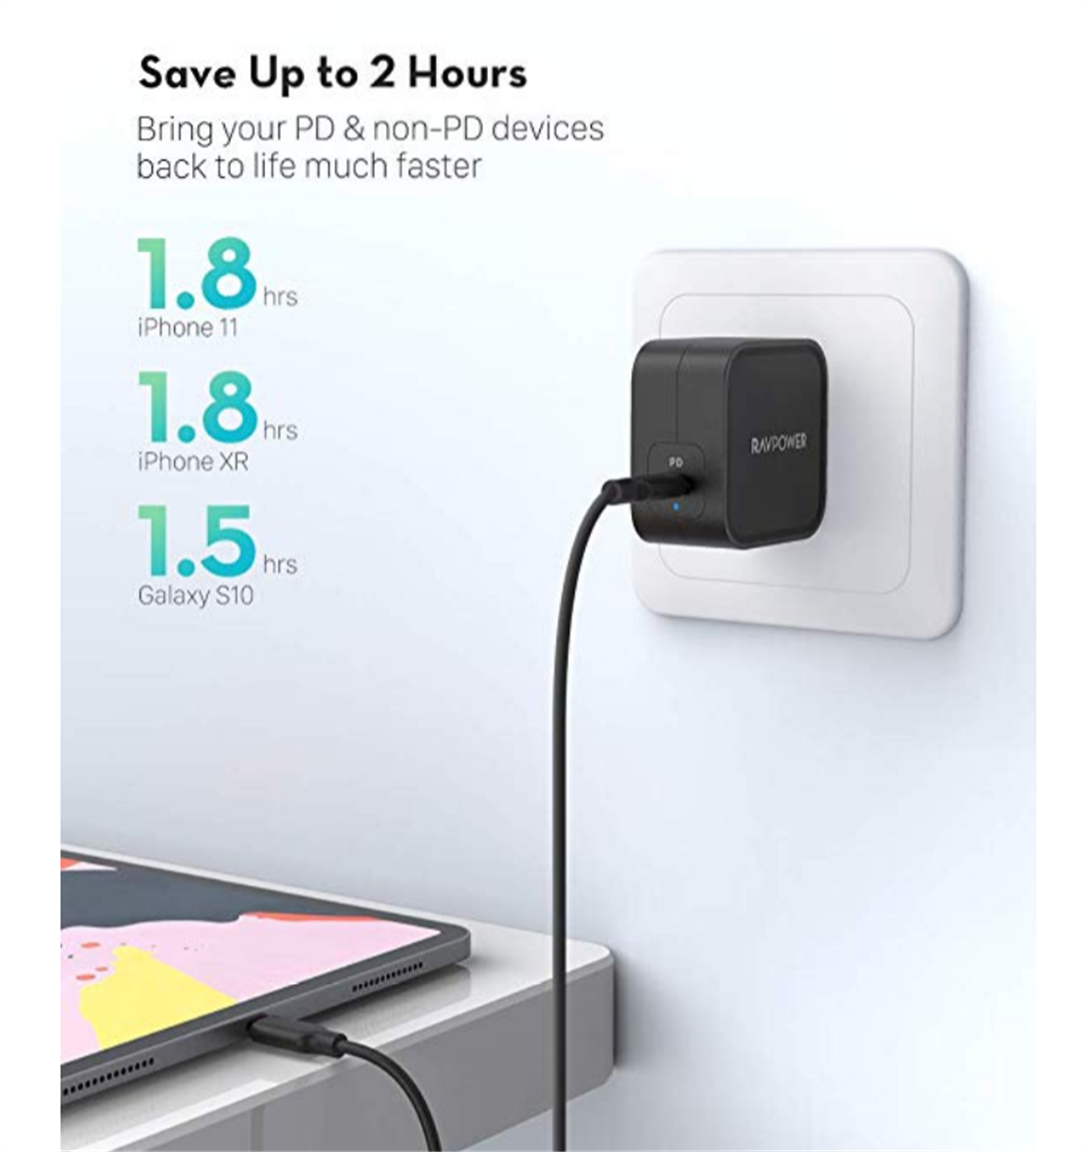 Amazon – RAVPower 61W GaN PD USB-C 3.0 Foldable Wall Charger Only $25.99, Reg $35.99 + Free Shipping!